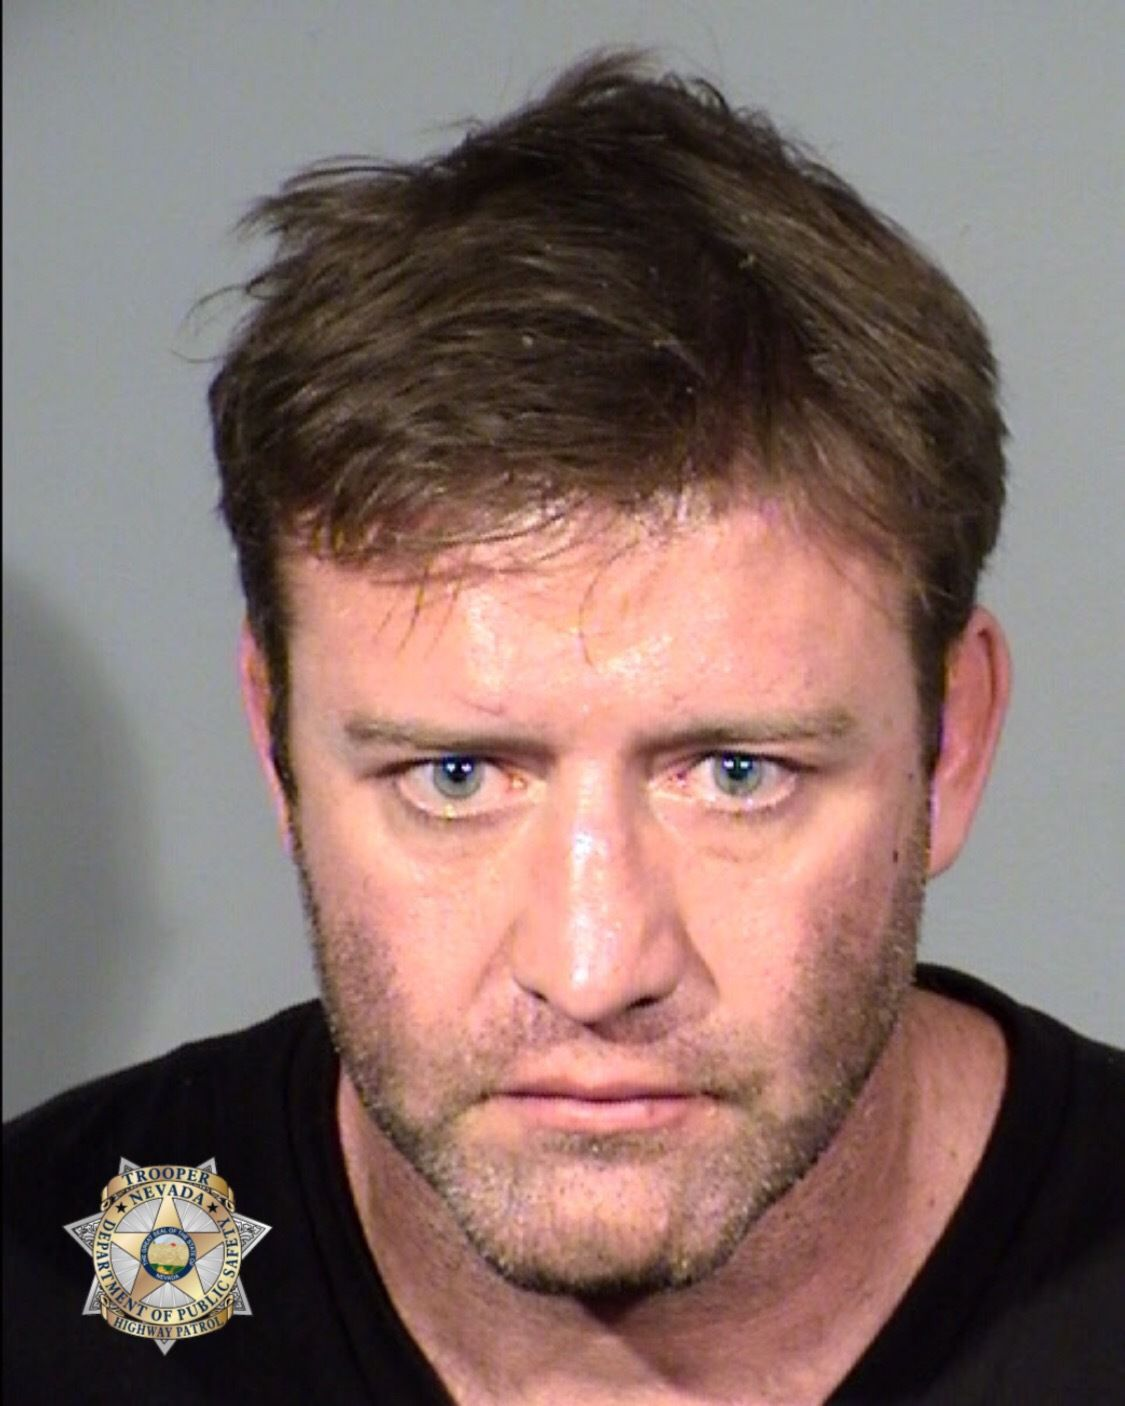 Stephan Bonnar charged with DUI after being restrained by citizens - MMA Fighting